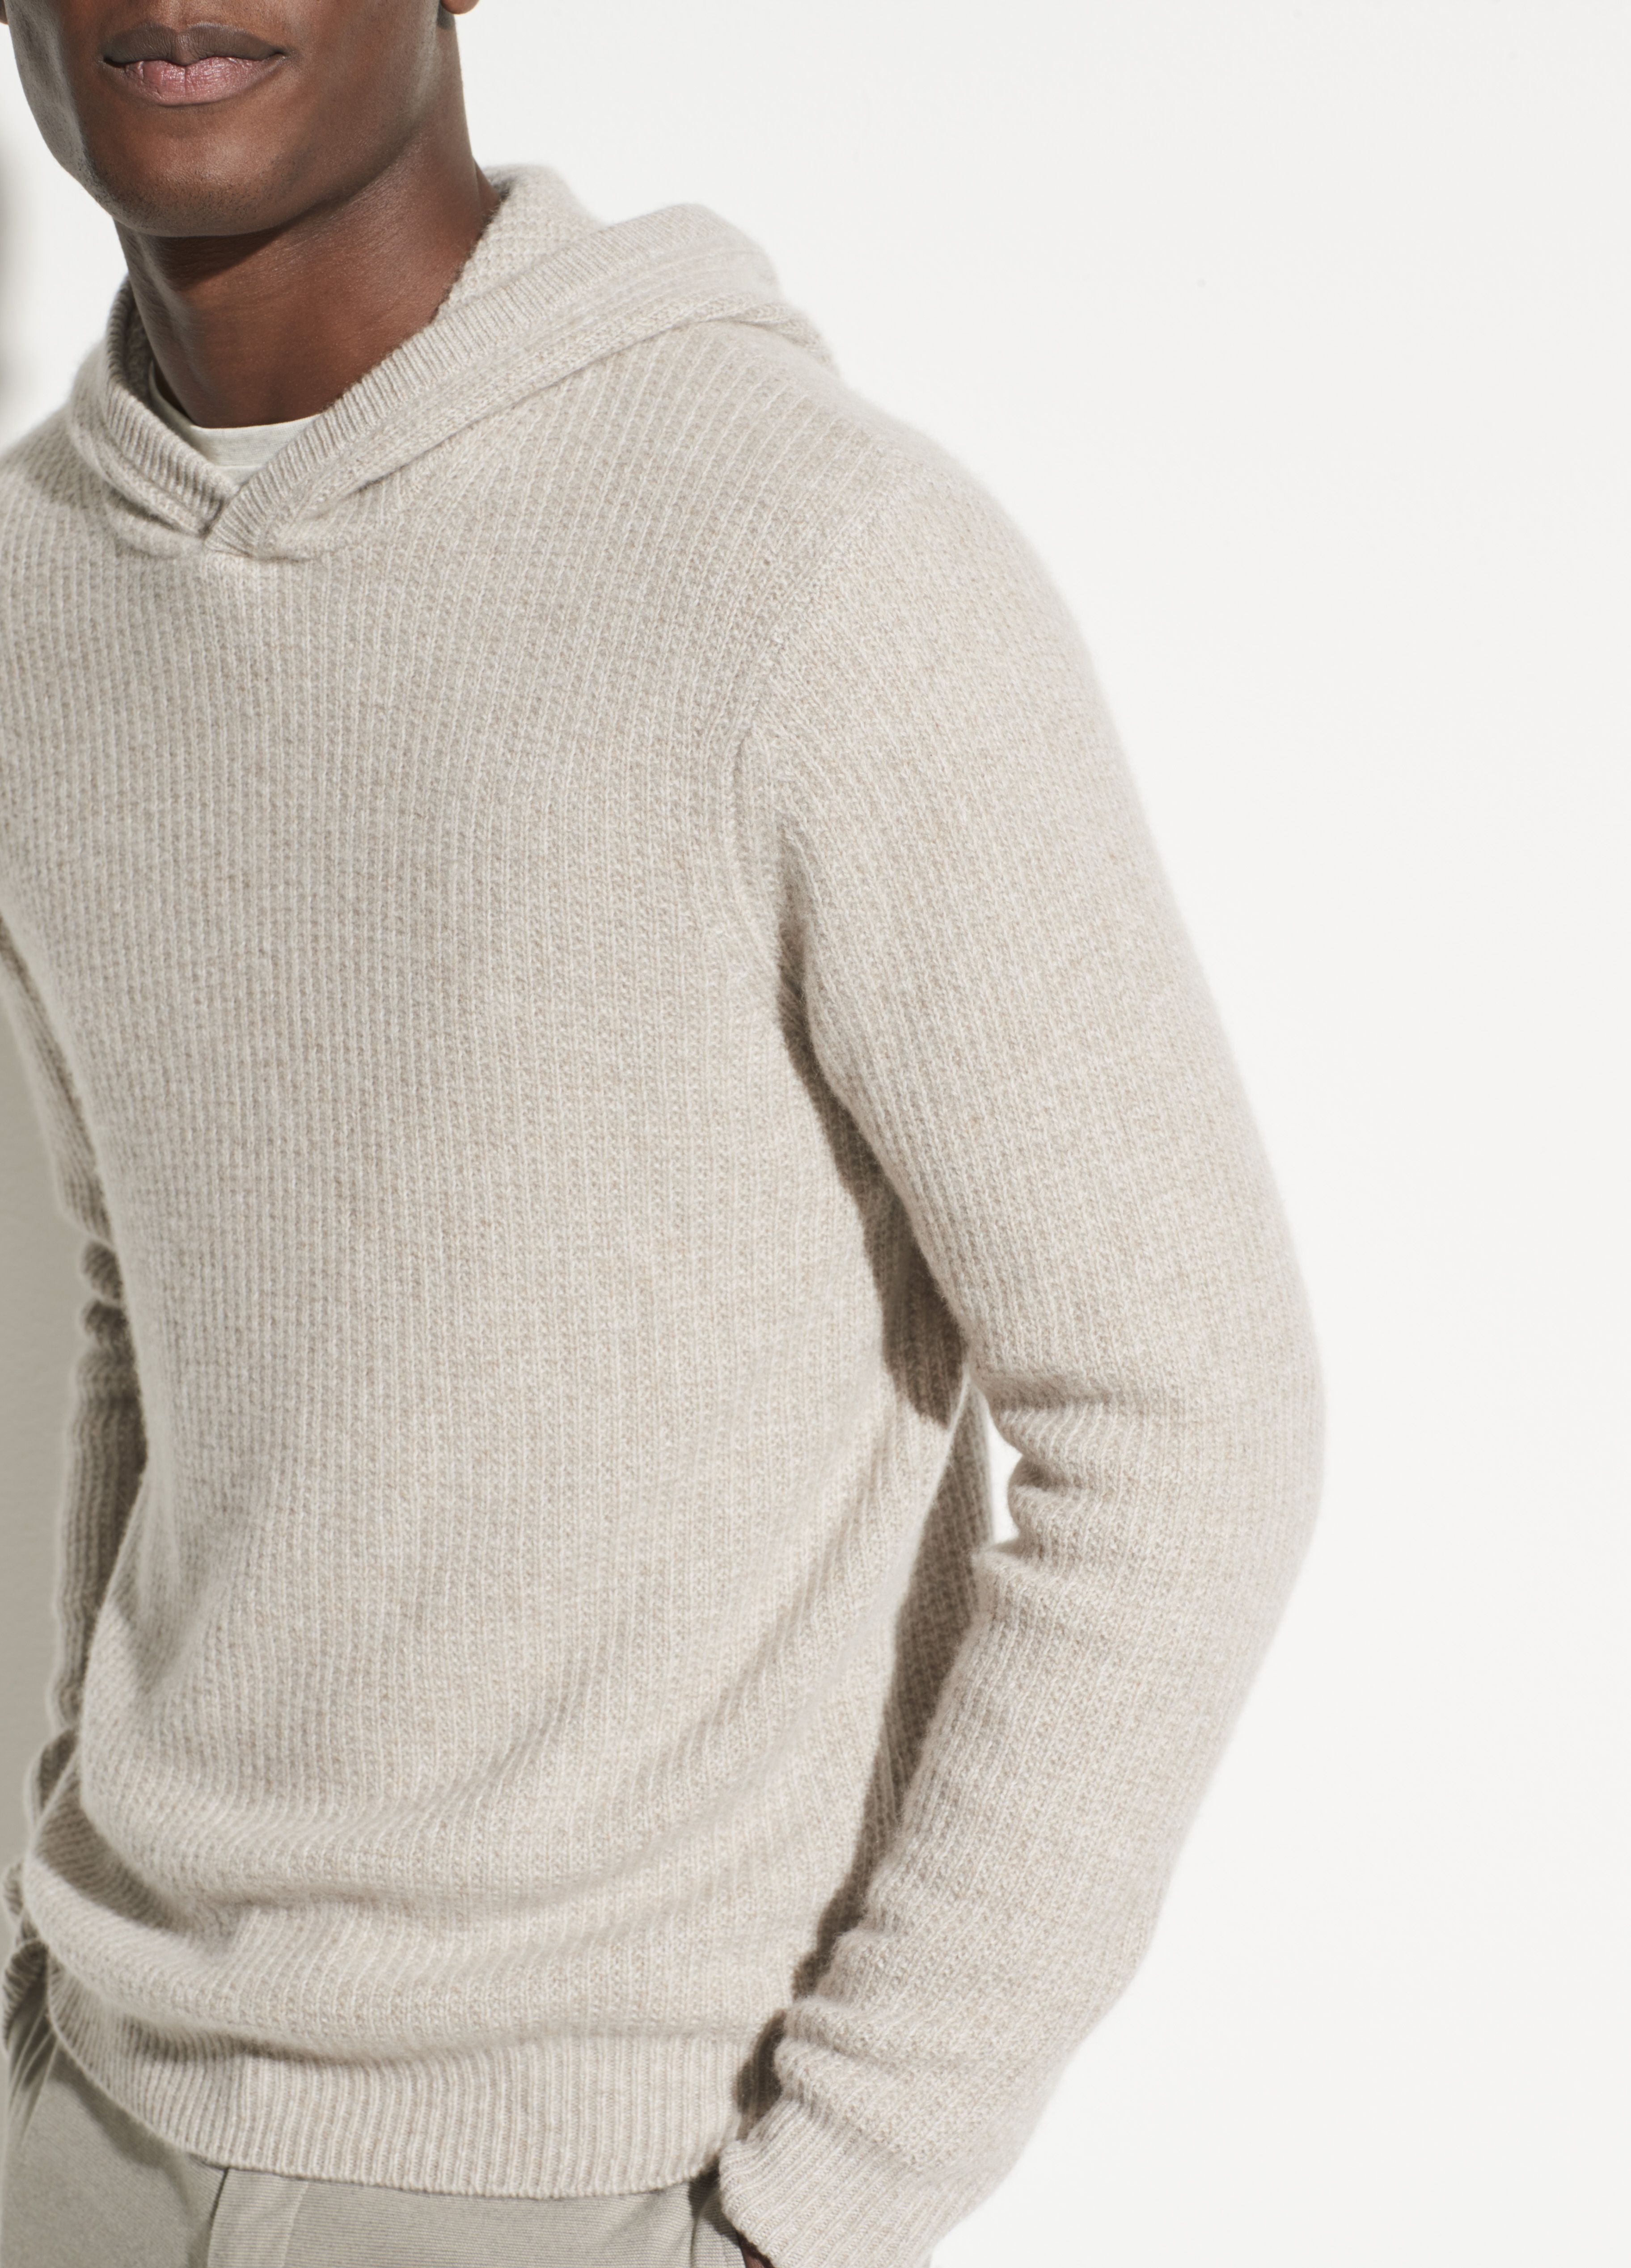 Marled Cashmere Pullover Hoodie For Men Pullover Hoodie Mens Sweatshirts Pullover [ 5074 x 3648 Pixel ]